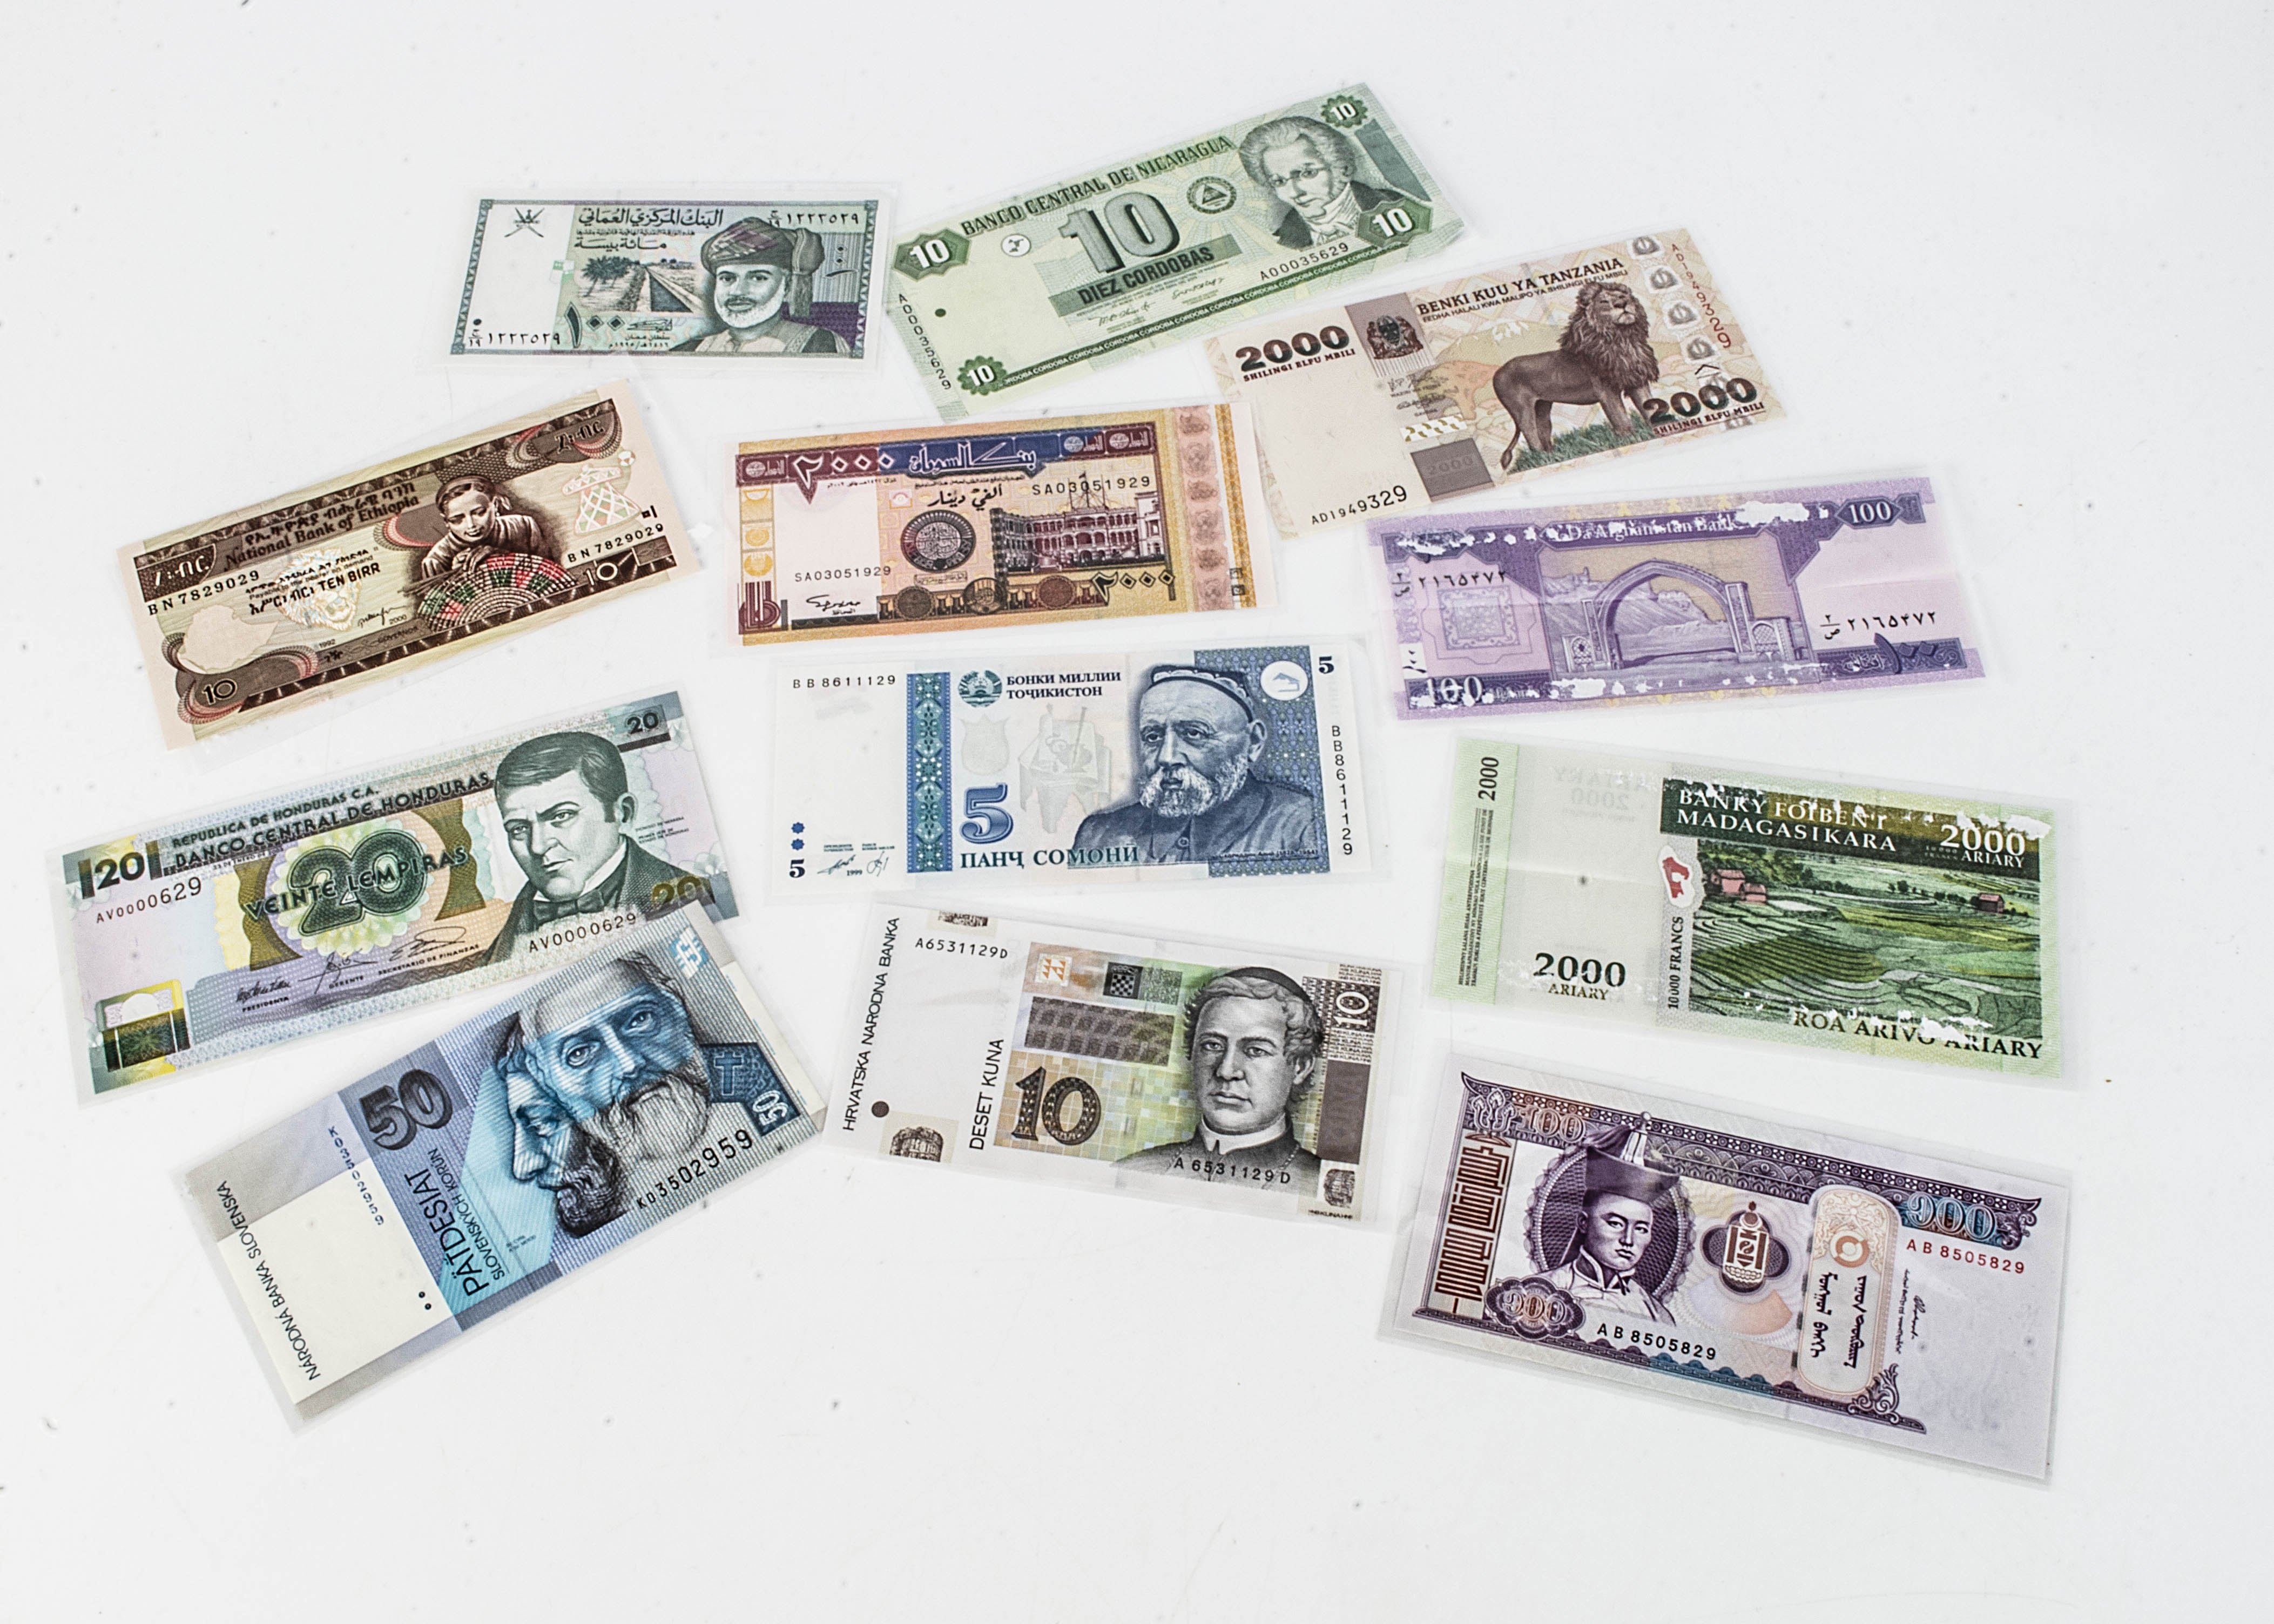 Twelve World bank notes, including 100 from Afghanistan, 2000 shillings from Tanzania, 10 from